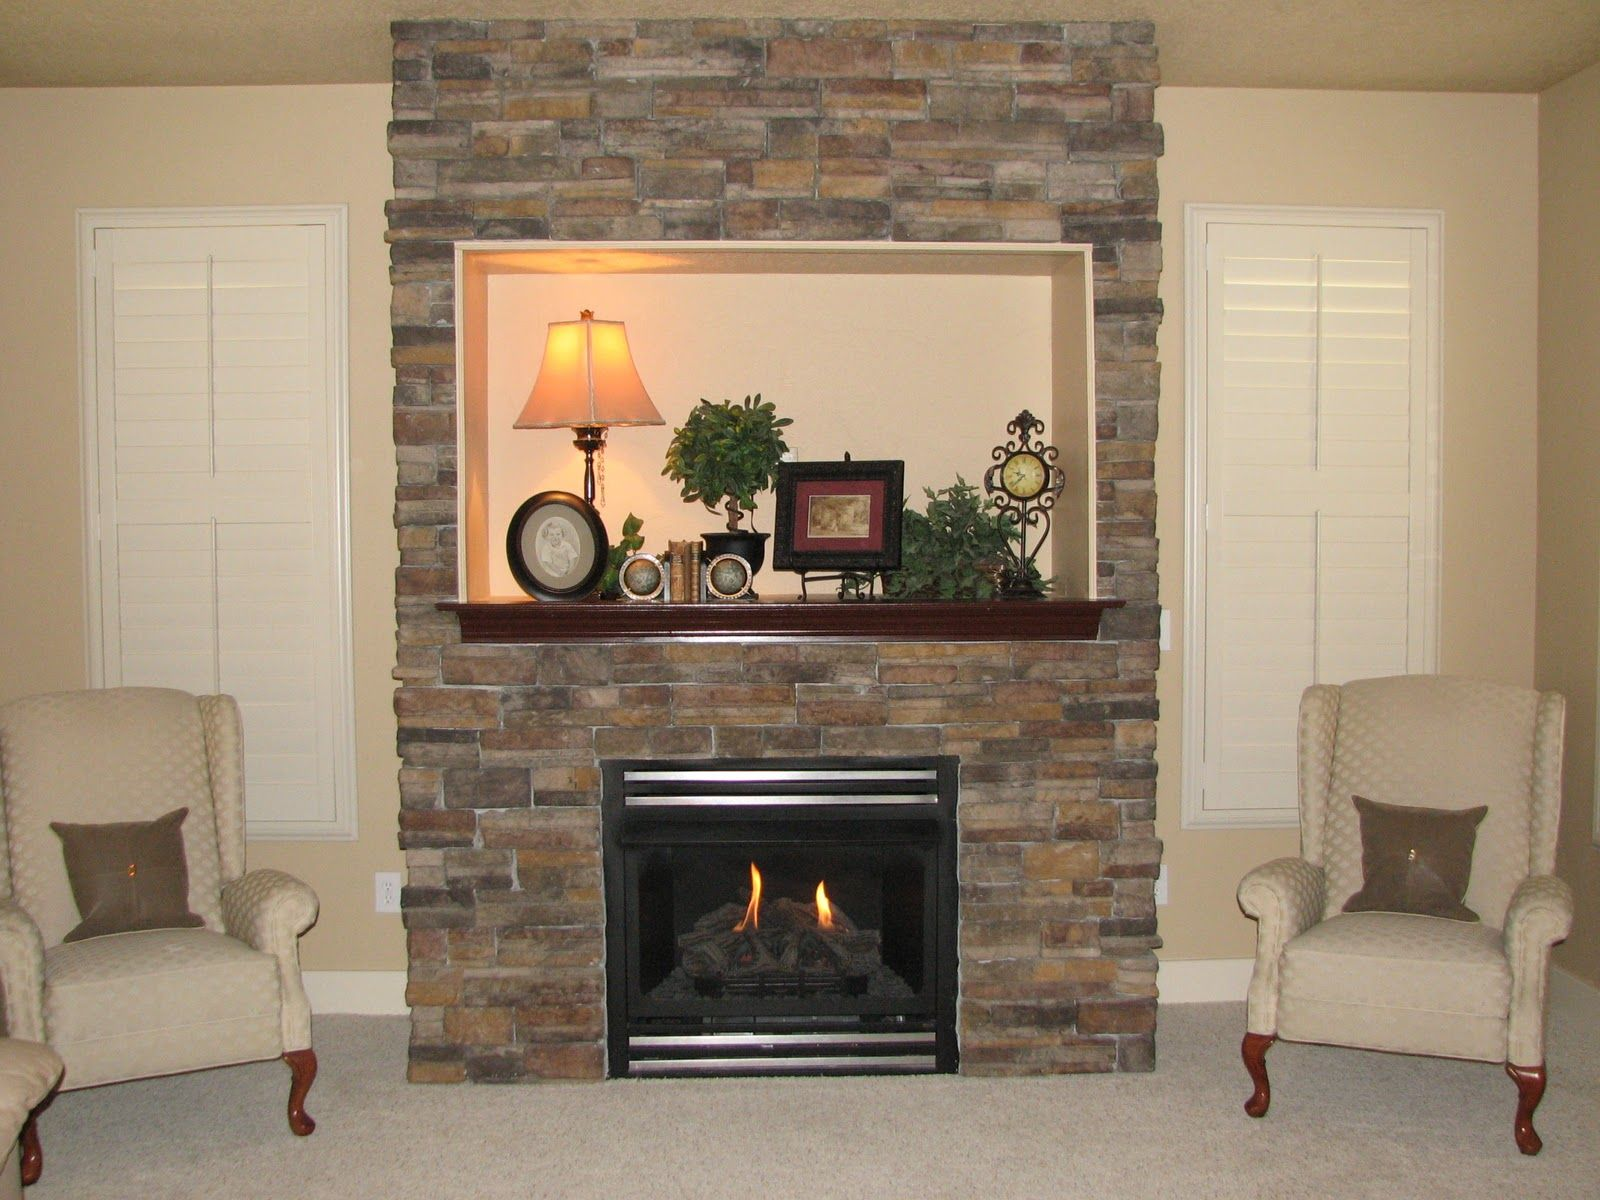 Stone Fireplace Designs Cool Fireplace Stone And Tile Ideas .